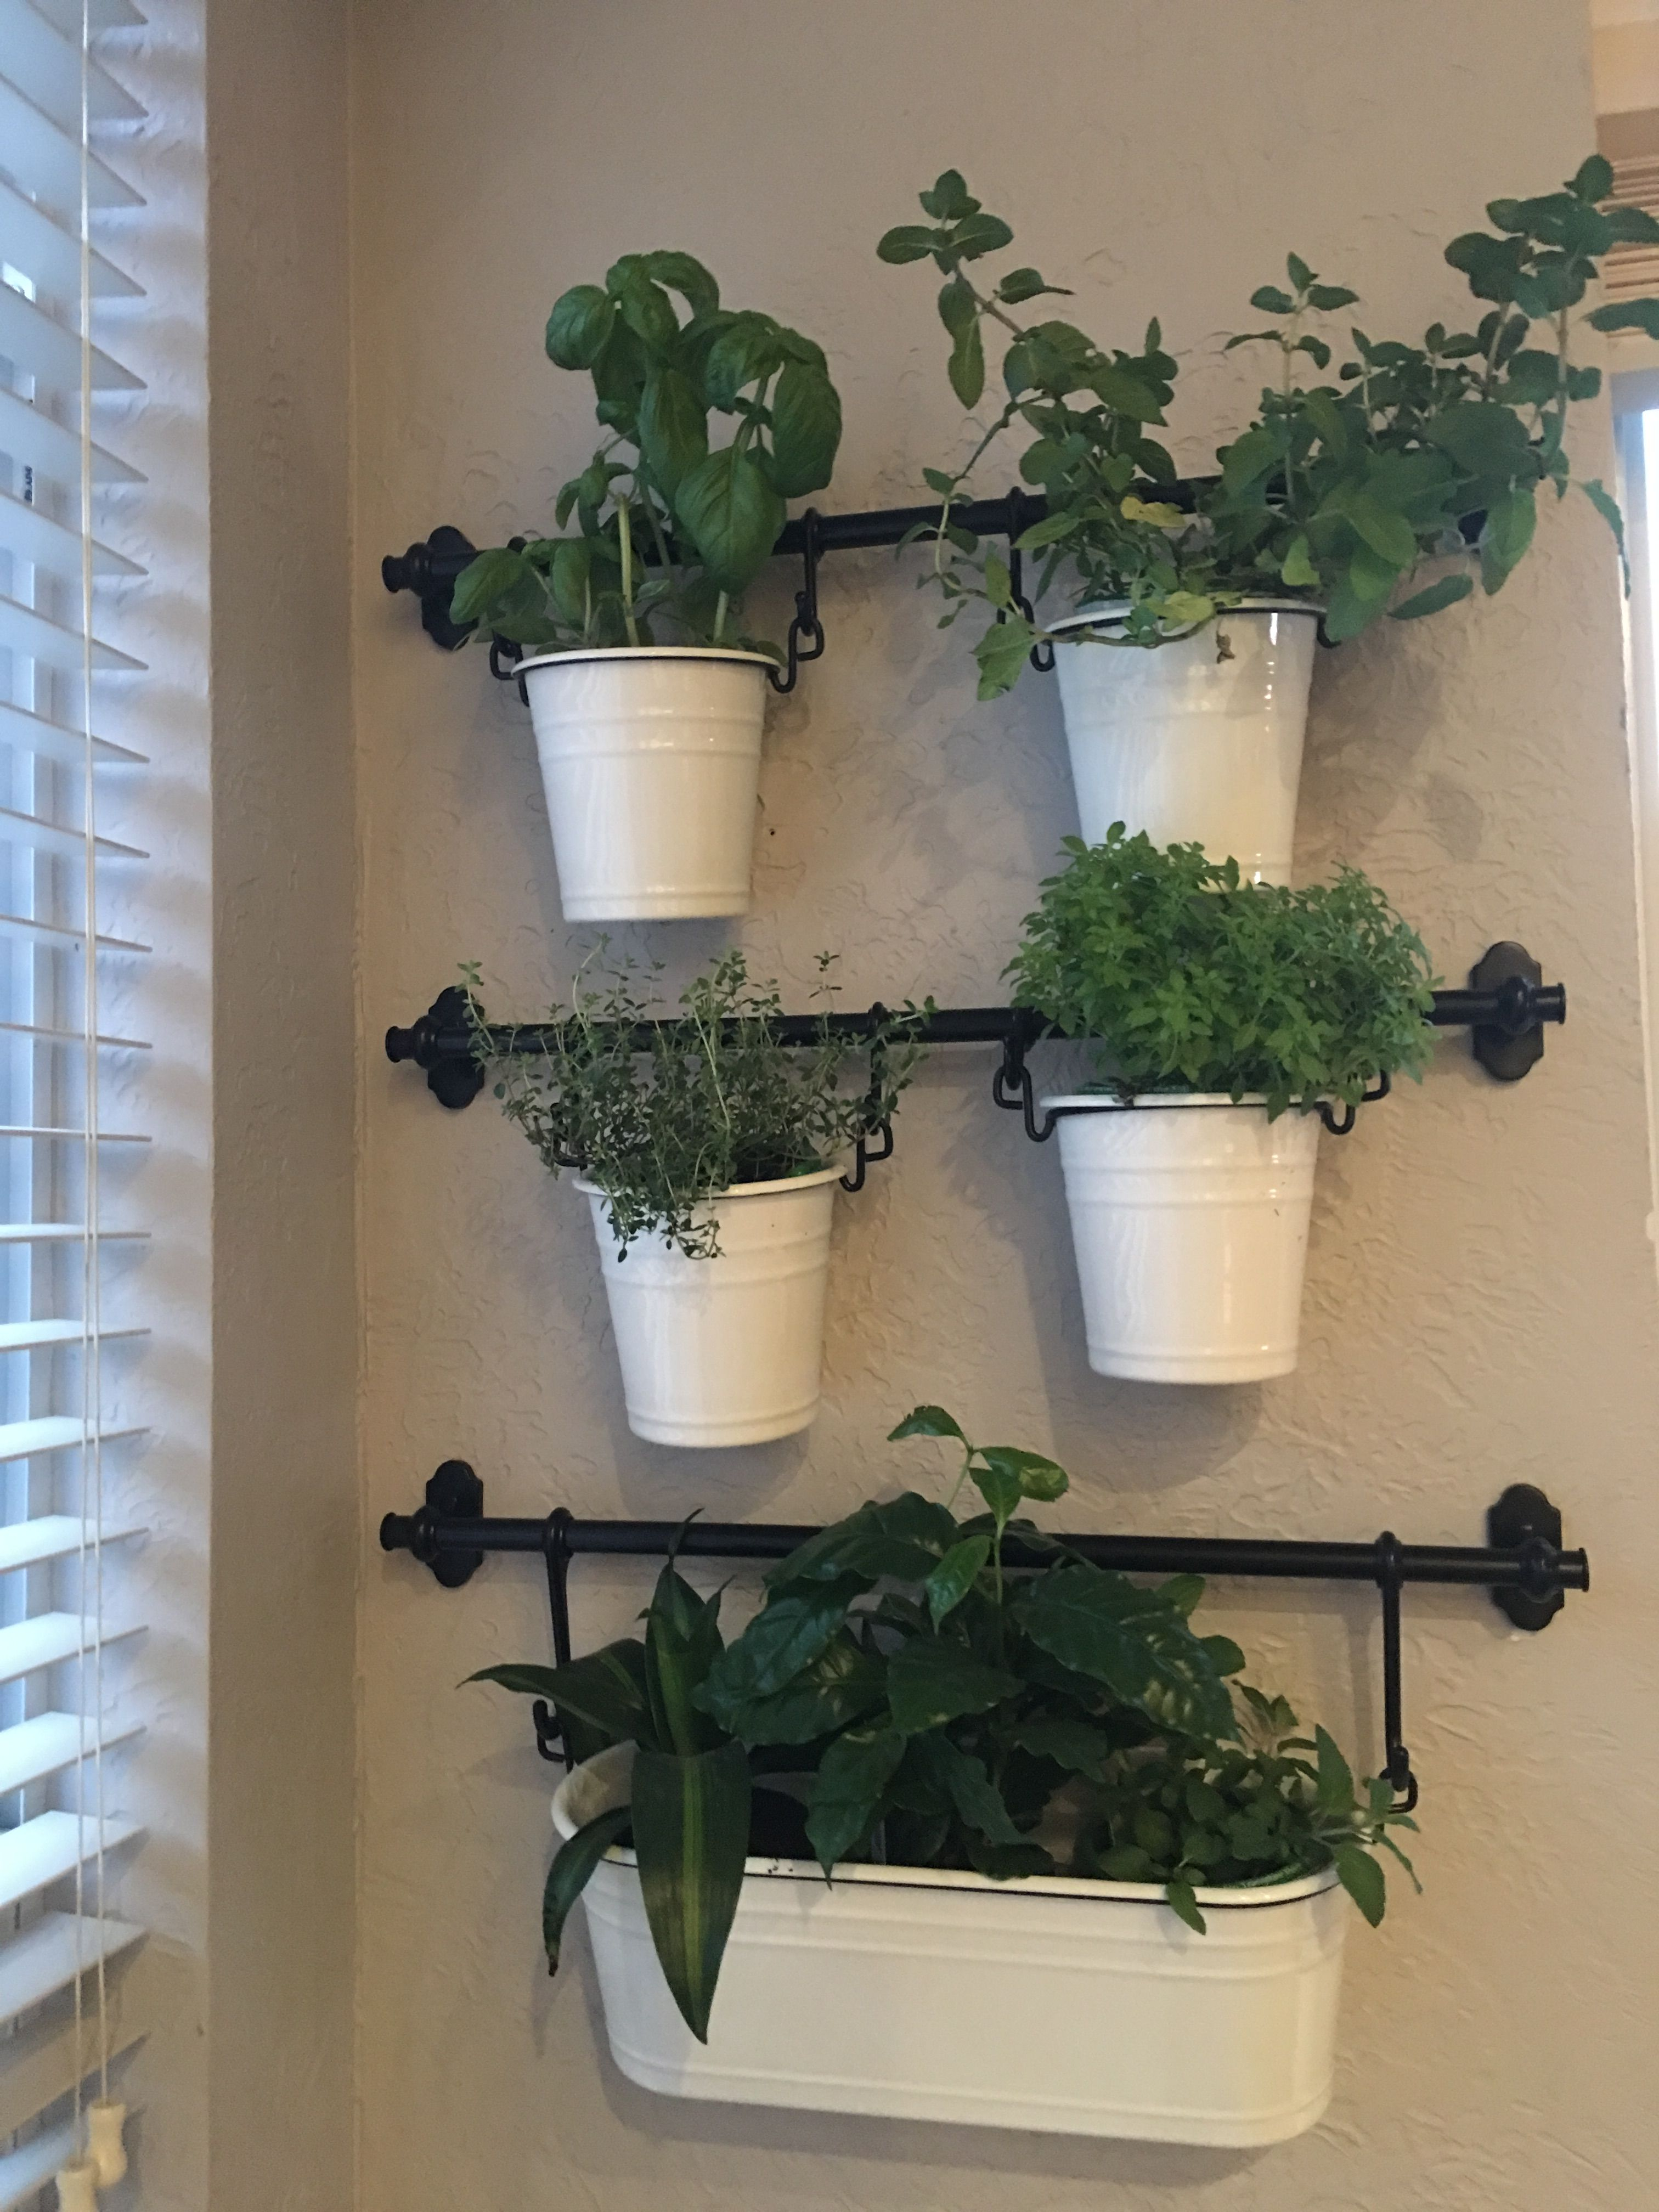 Pin By Laura Pedace On House Plants Hanging Herb Gardens House Plants House Plants Hanging